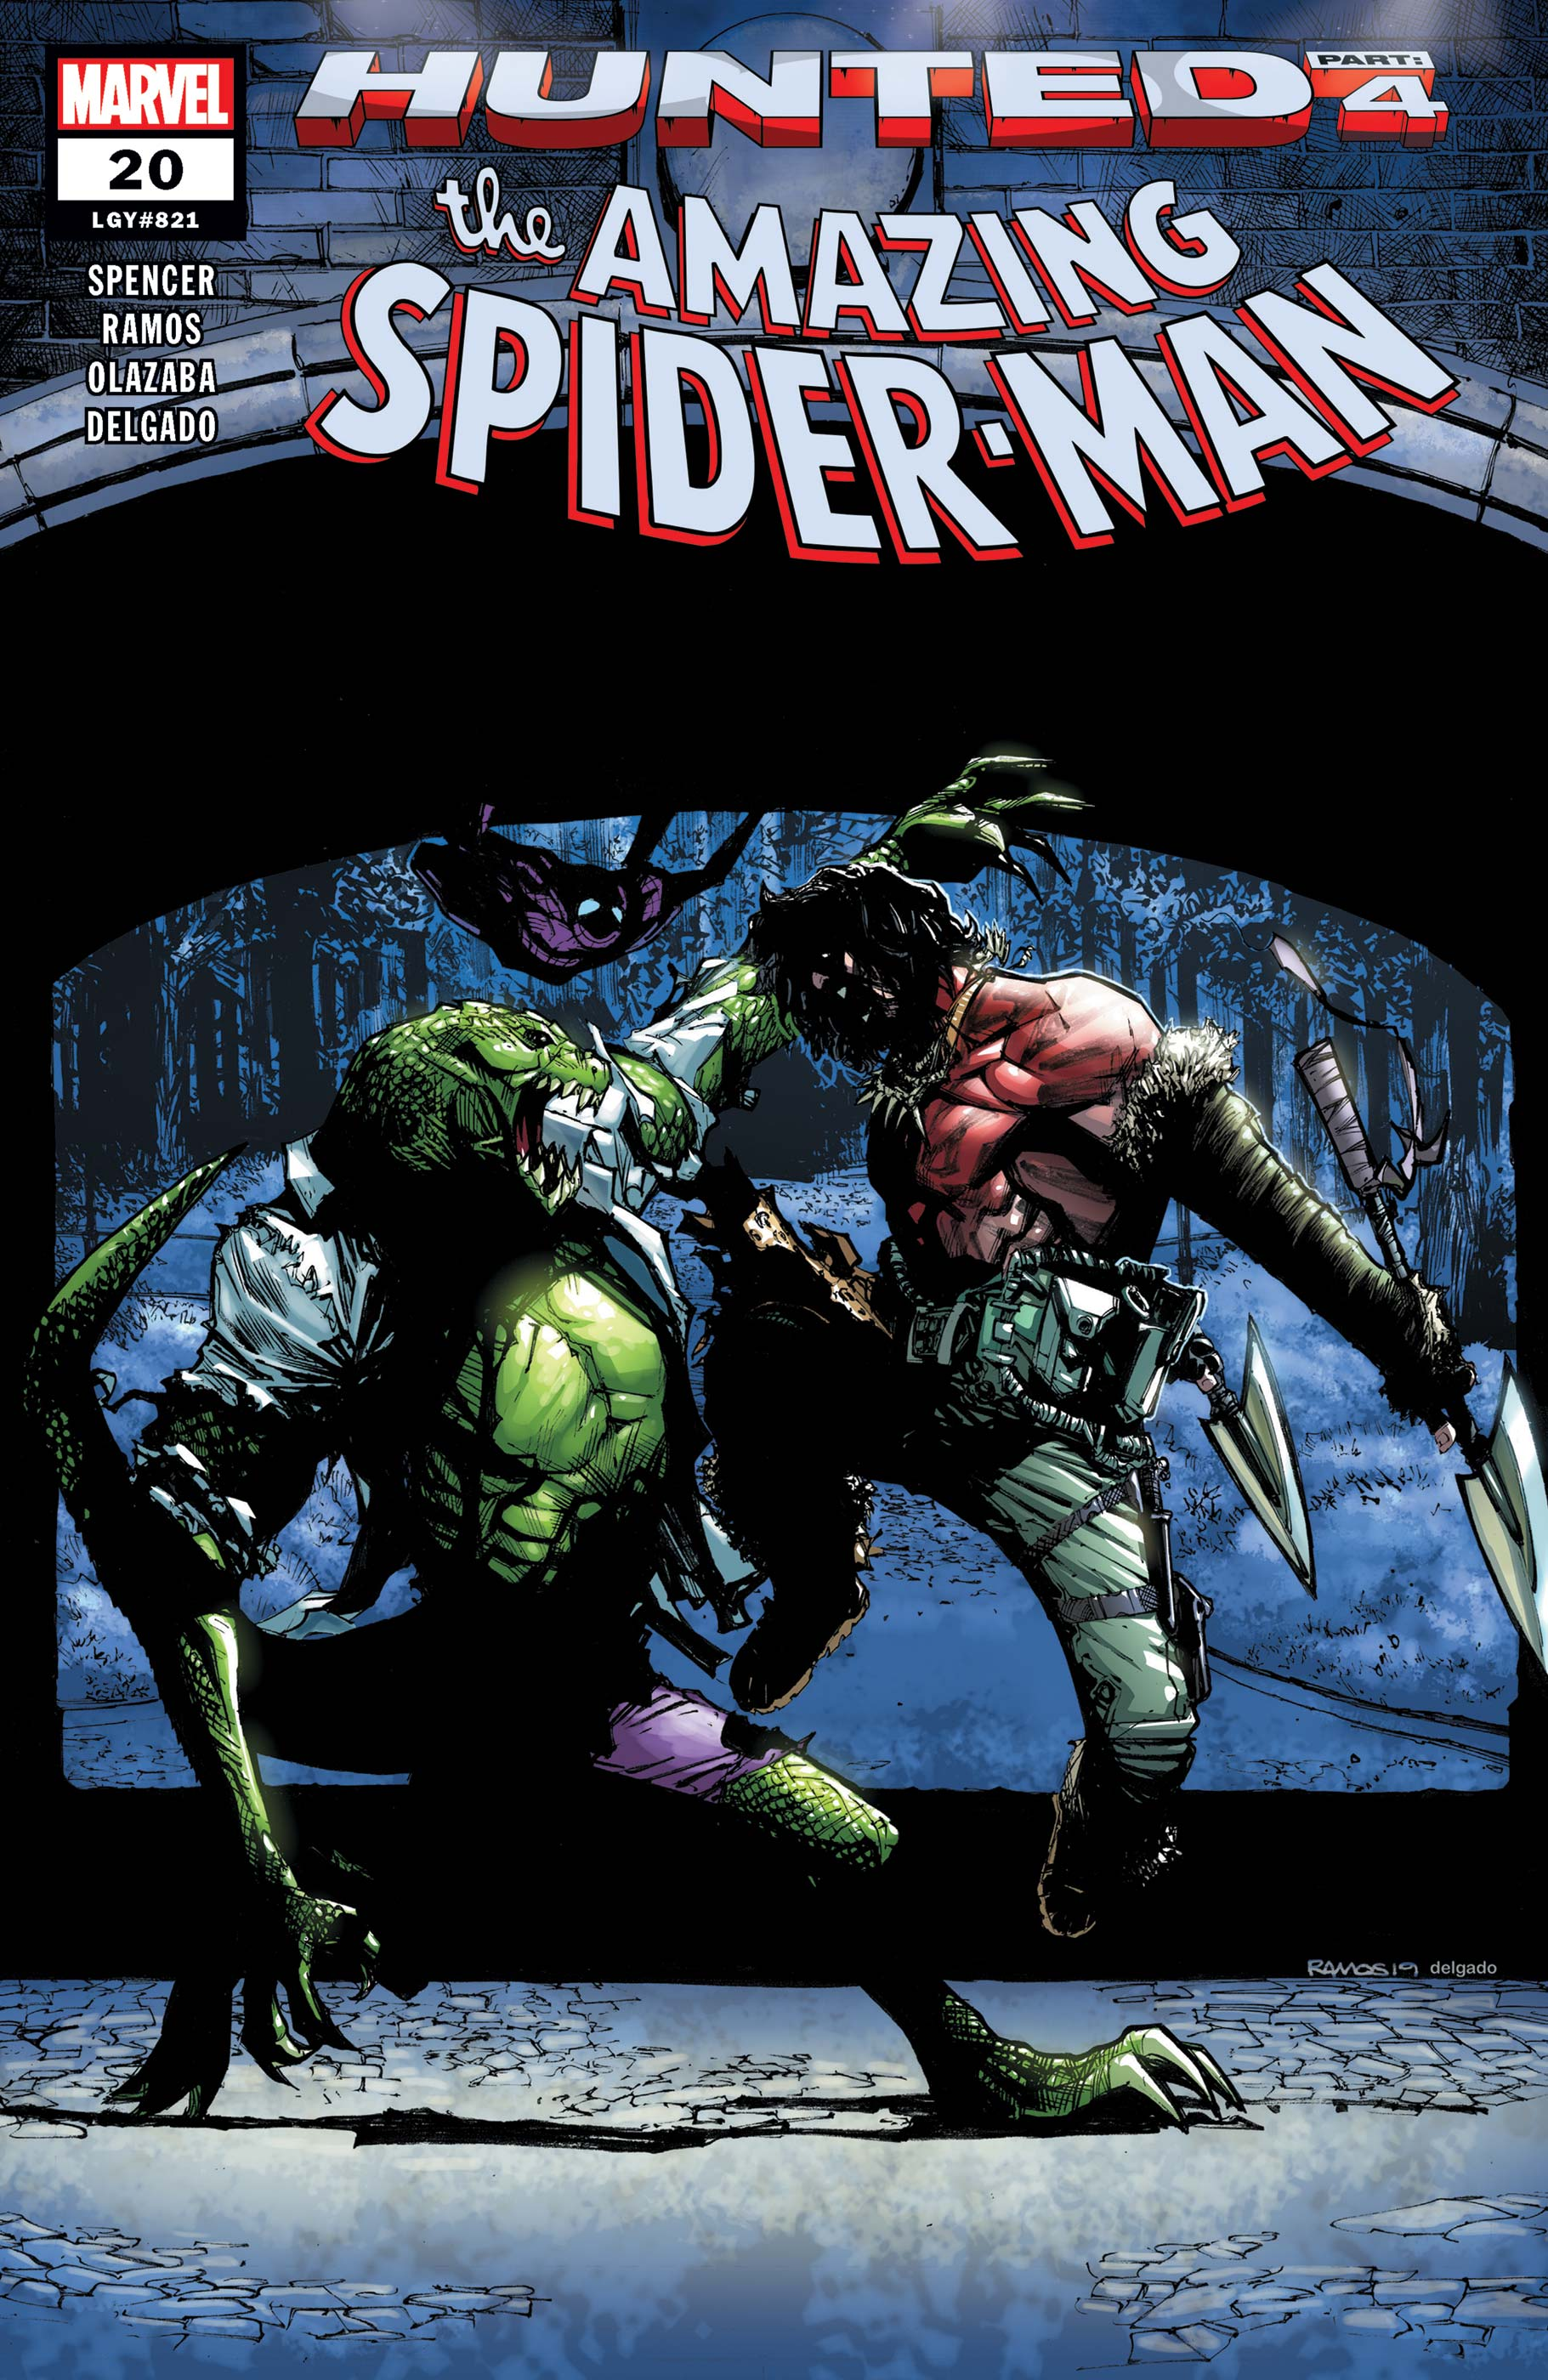 Image result for amazing spiderman 20 cover 2019